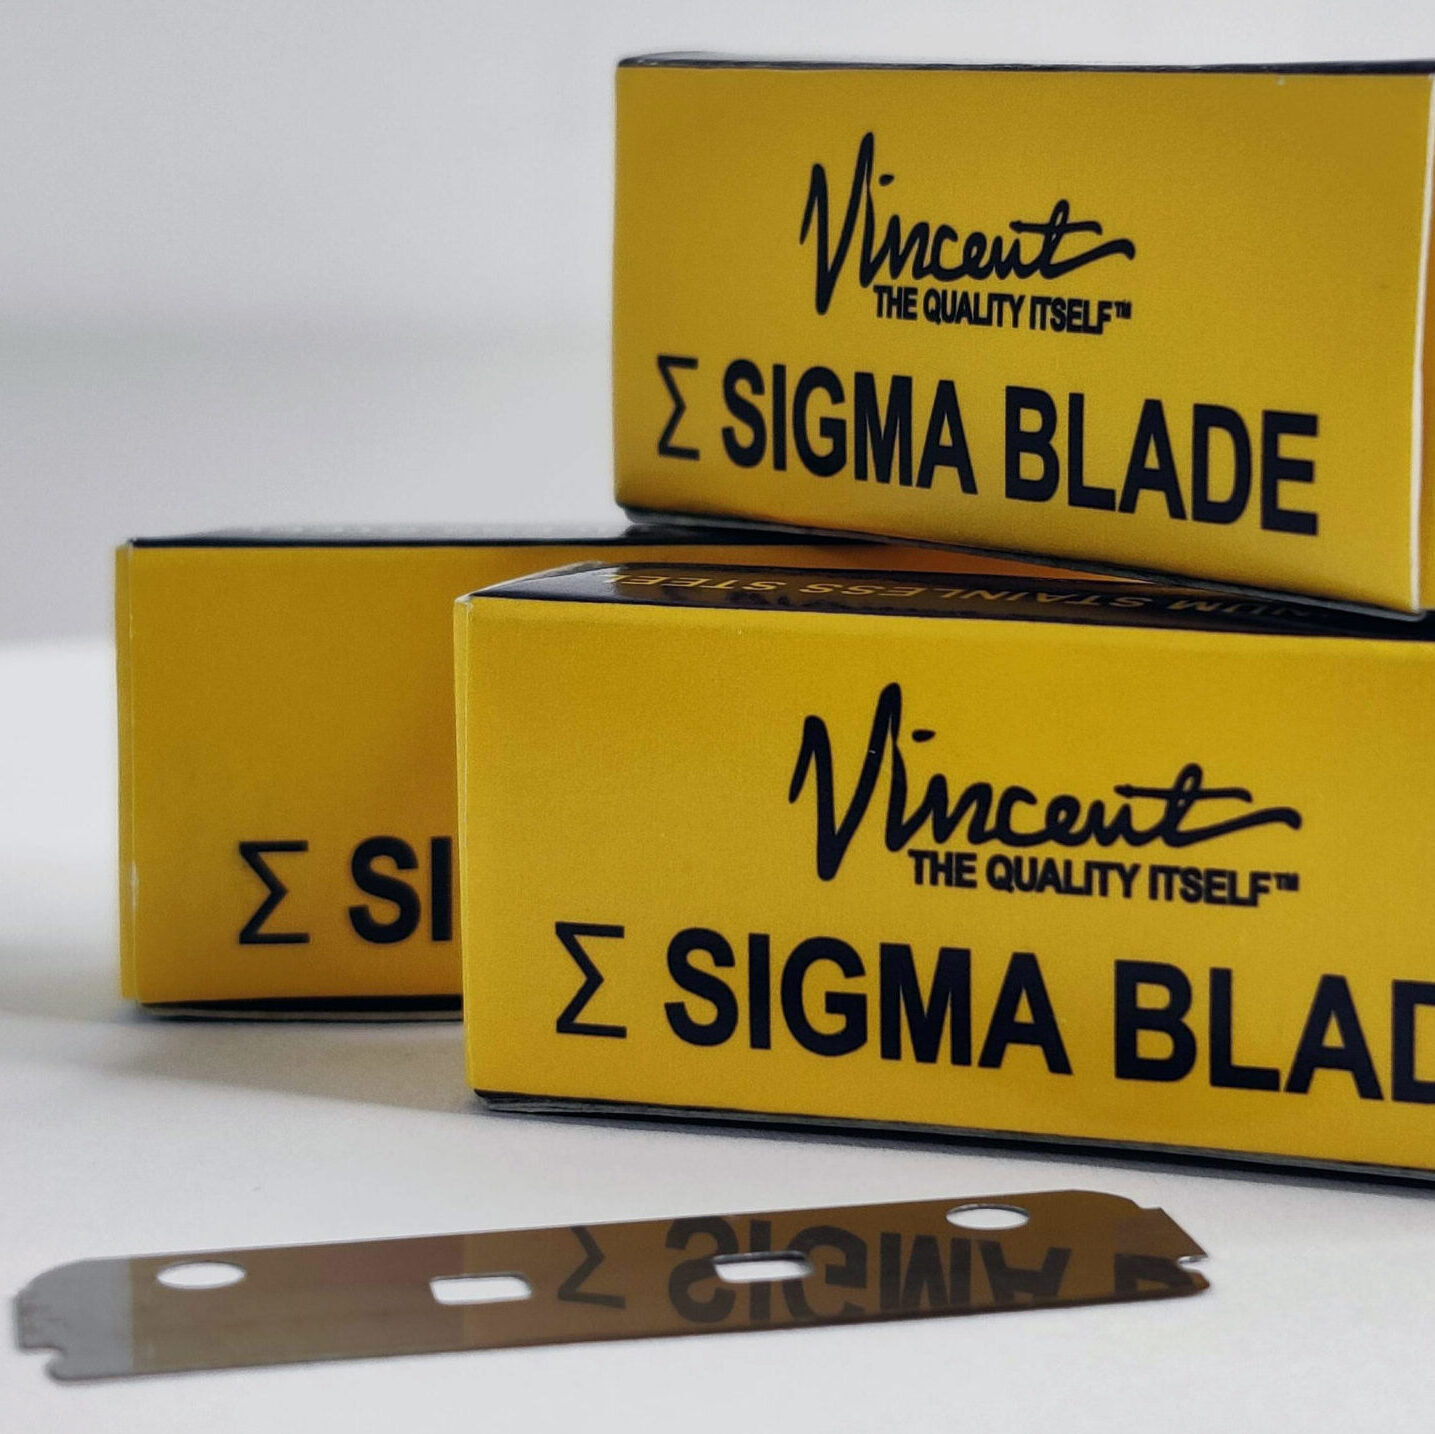 Vincent Sigma Blade for Professional Shaving and grooming